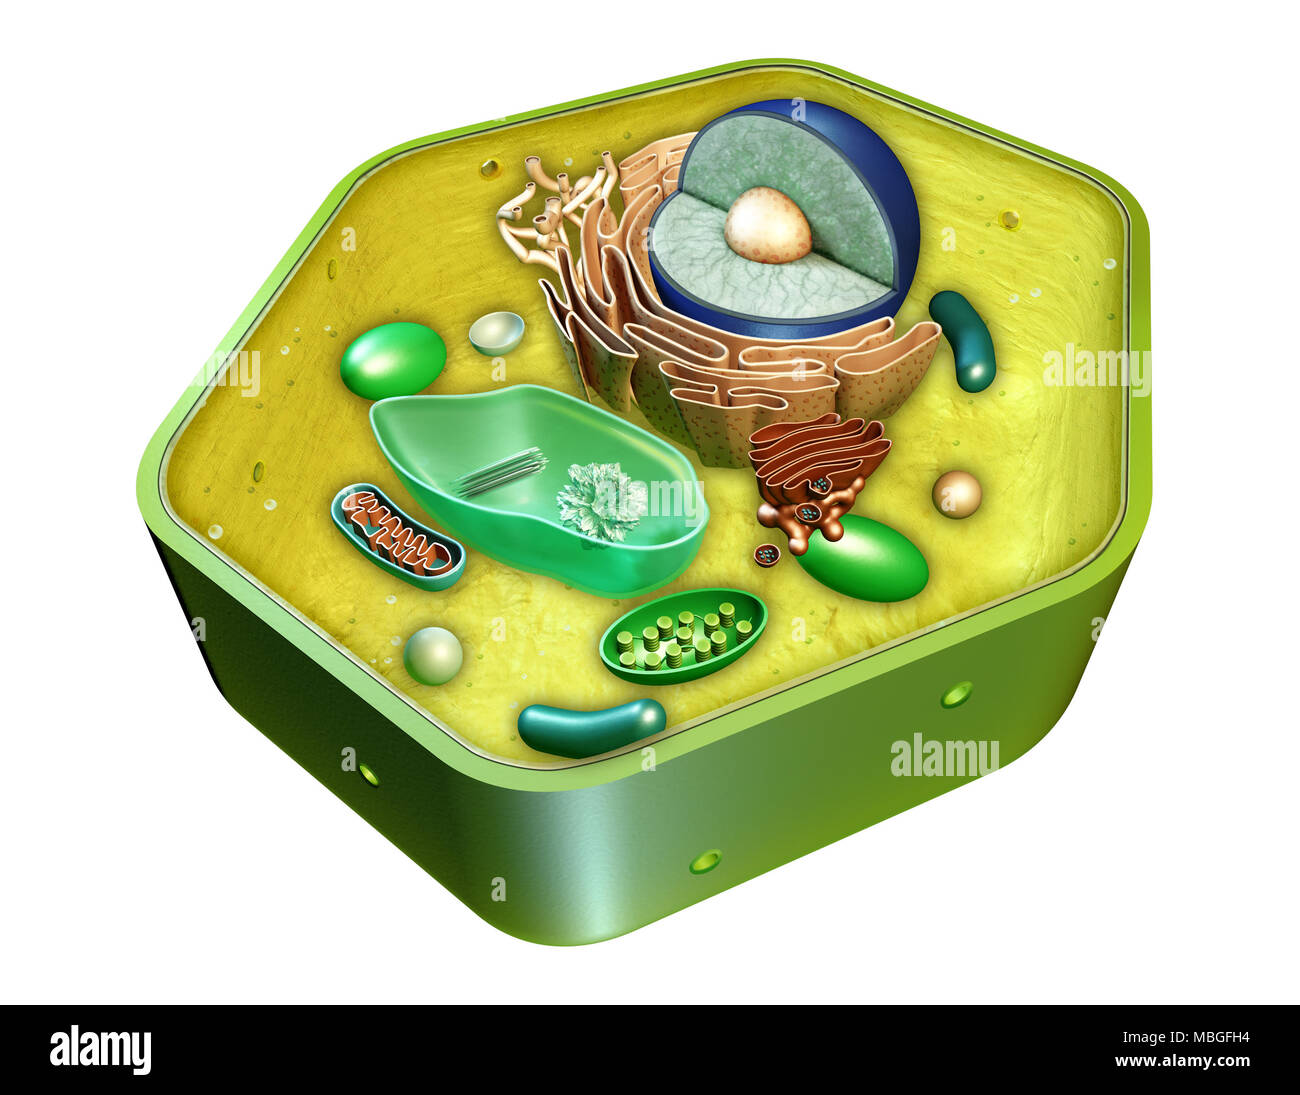 Rough Endoplasmic Reticulum Stock Photos Simple Plant Cell Diagram With Labels For Kids Project A Internal Structure Of Digital Illustration Clipping Path Included